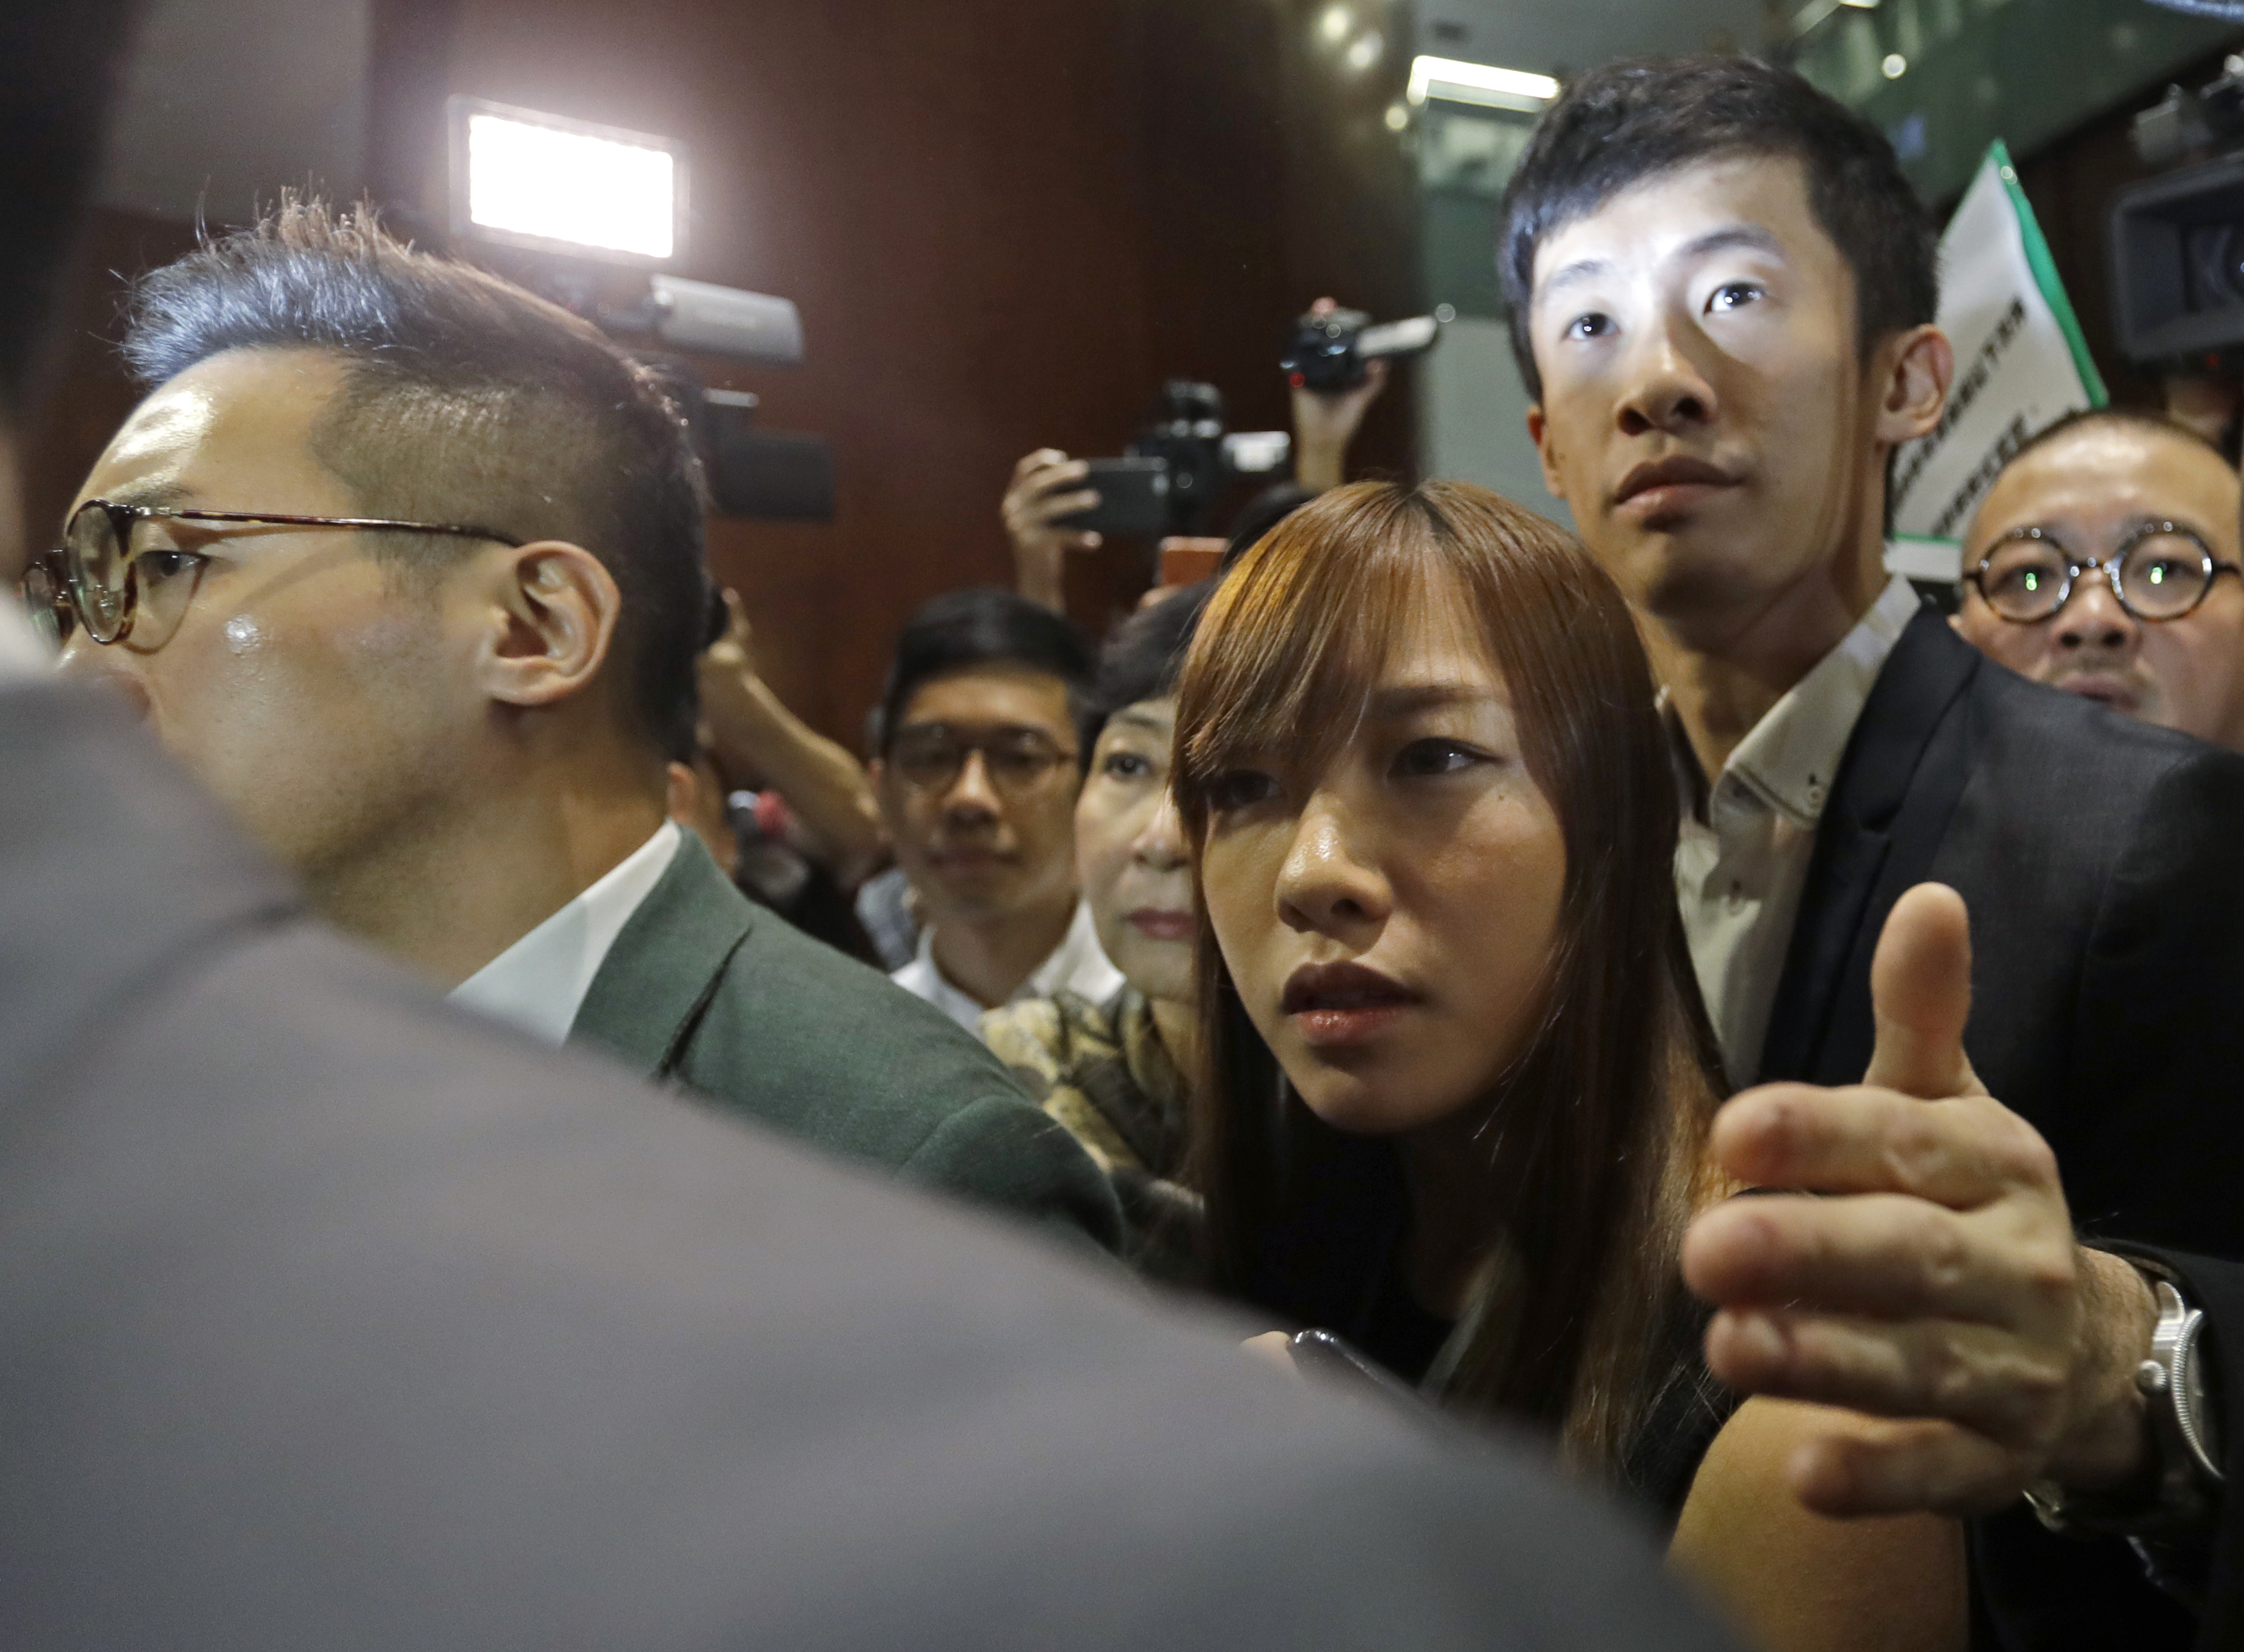 Hong Kong lawmakers Yau Wai-ching, center, and Sixtus Leung, right, are escorted by pan-democrats to enter the legislative chamber in Hong Kong on Oct. 26, 2016. More unruly scenes have erupted at Hong Kong's Legislative Council as the two newly elected lawmakers defied an order barring them from retaking their oaths after being disqualified earlier for swearing allegiance to the  Hong Kong nation